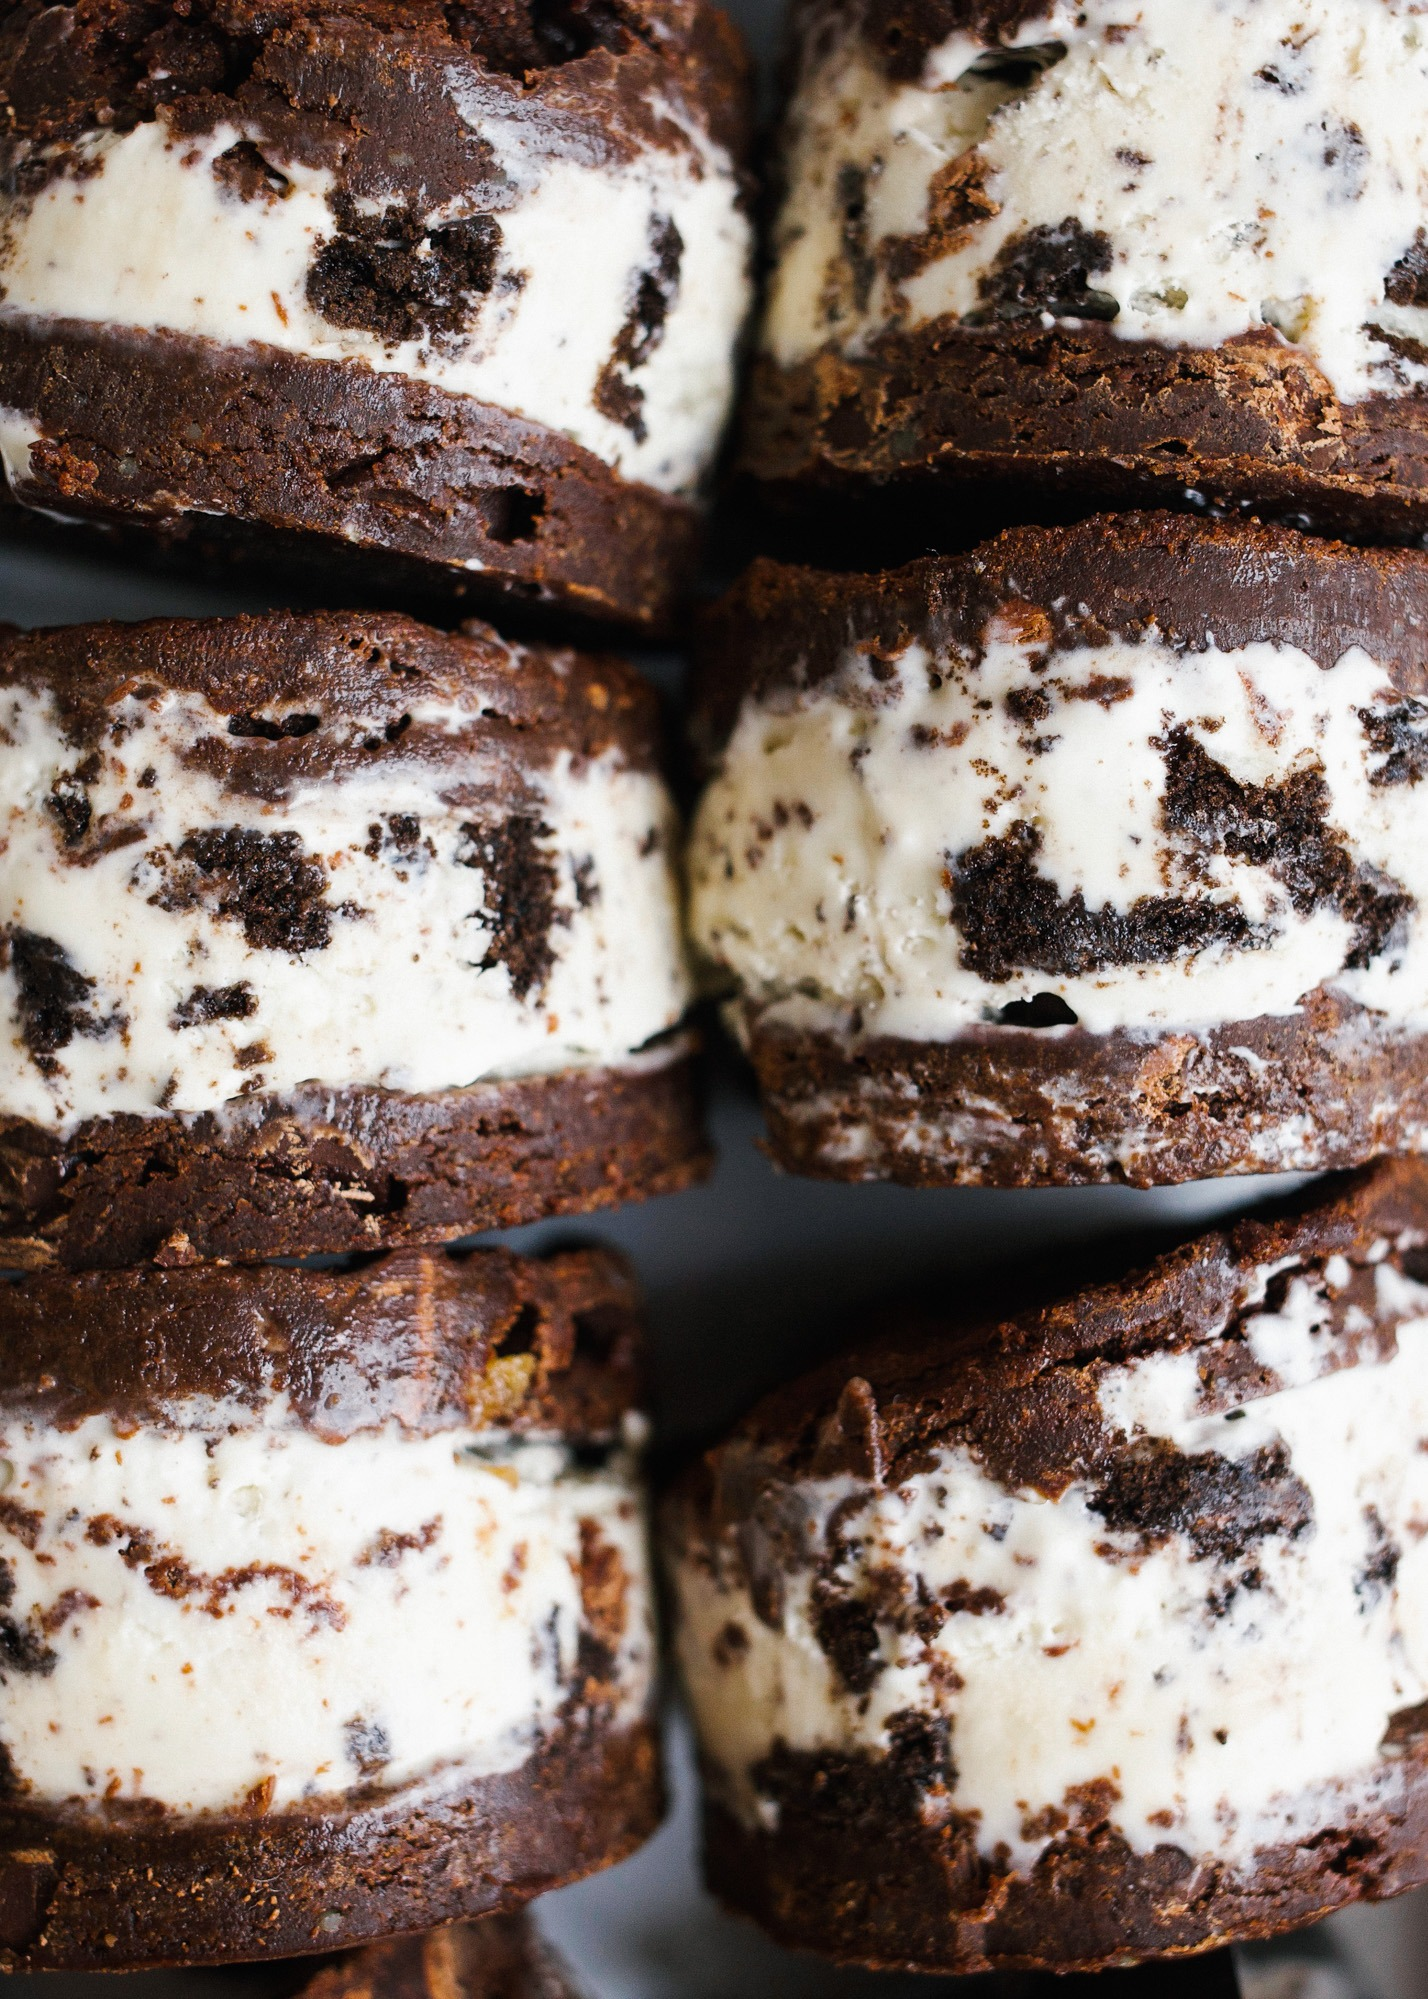 Brownie Ice Cream Sandwiches by Wood and Spoon blog. These are soft baked brownies stuffed with a no churn cookies and cream Oreo ice cream filling. The brownies stay chewy when frozen and this recipe makes a batch to feed a crew. Learn how to make homemade frozen treats without an ice cream maker on thewoodandspoon.com